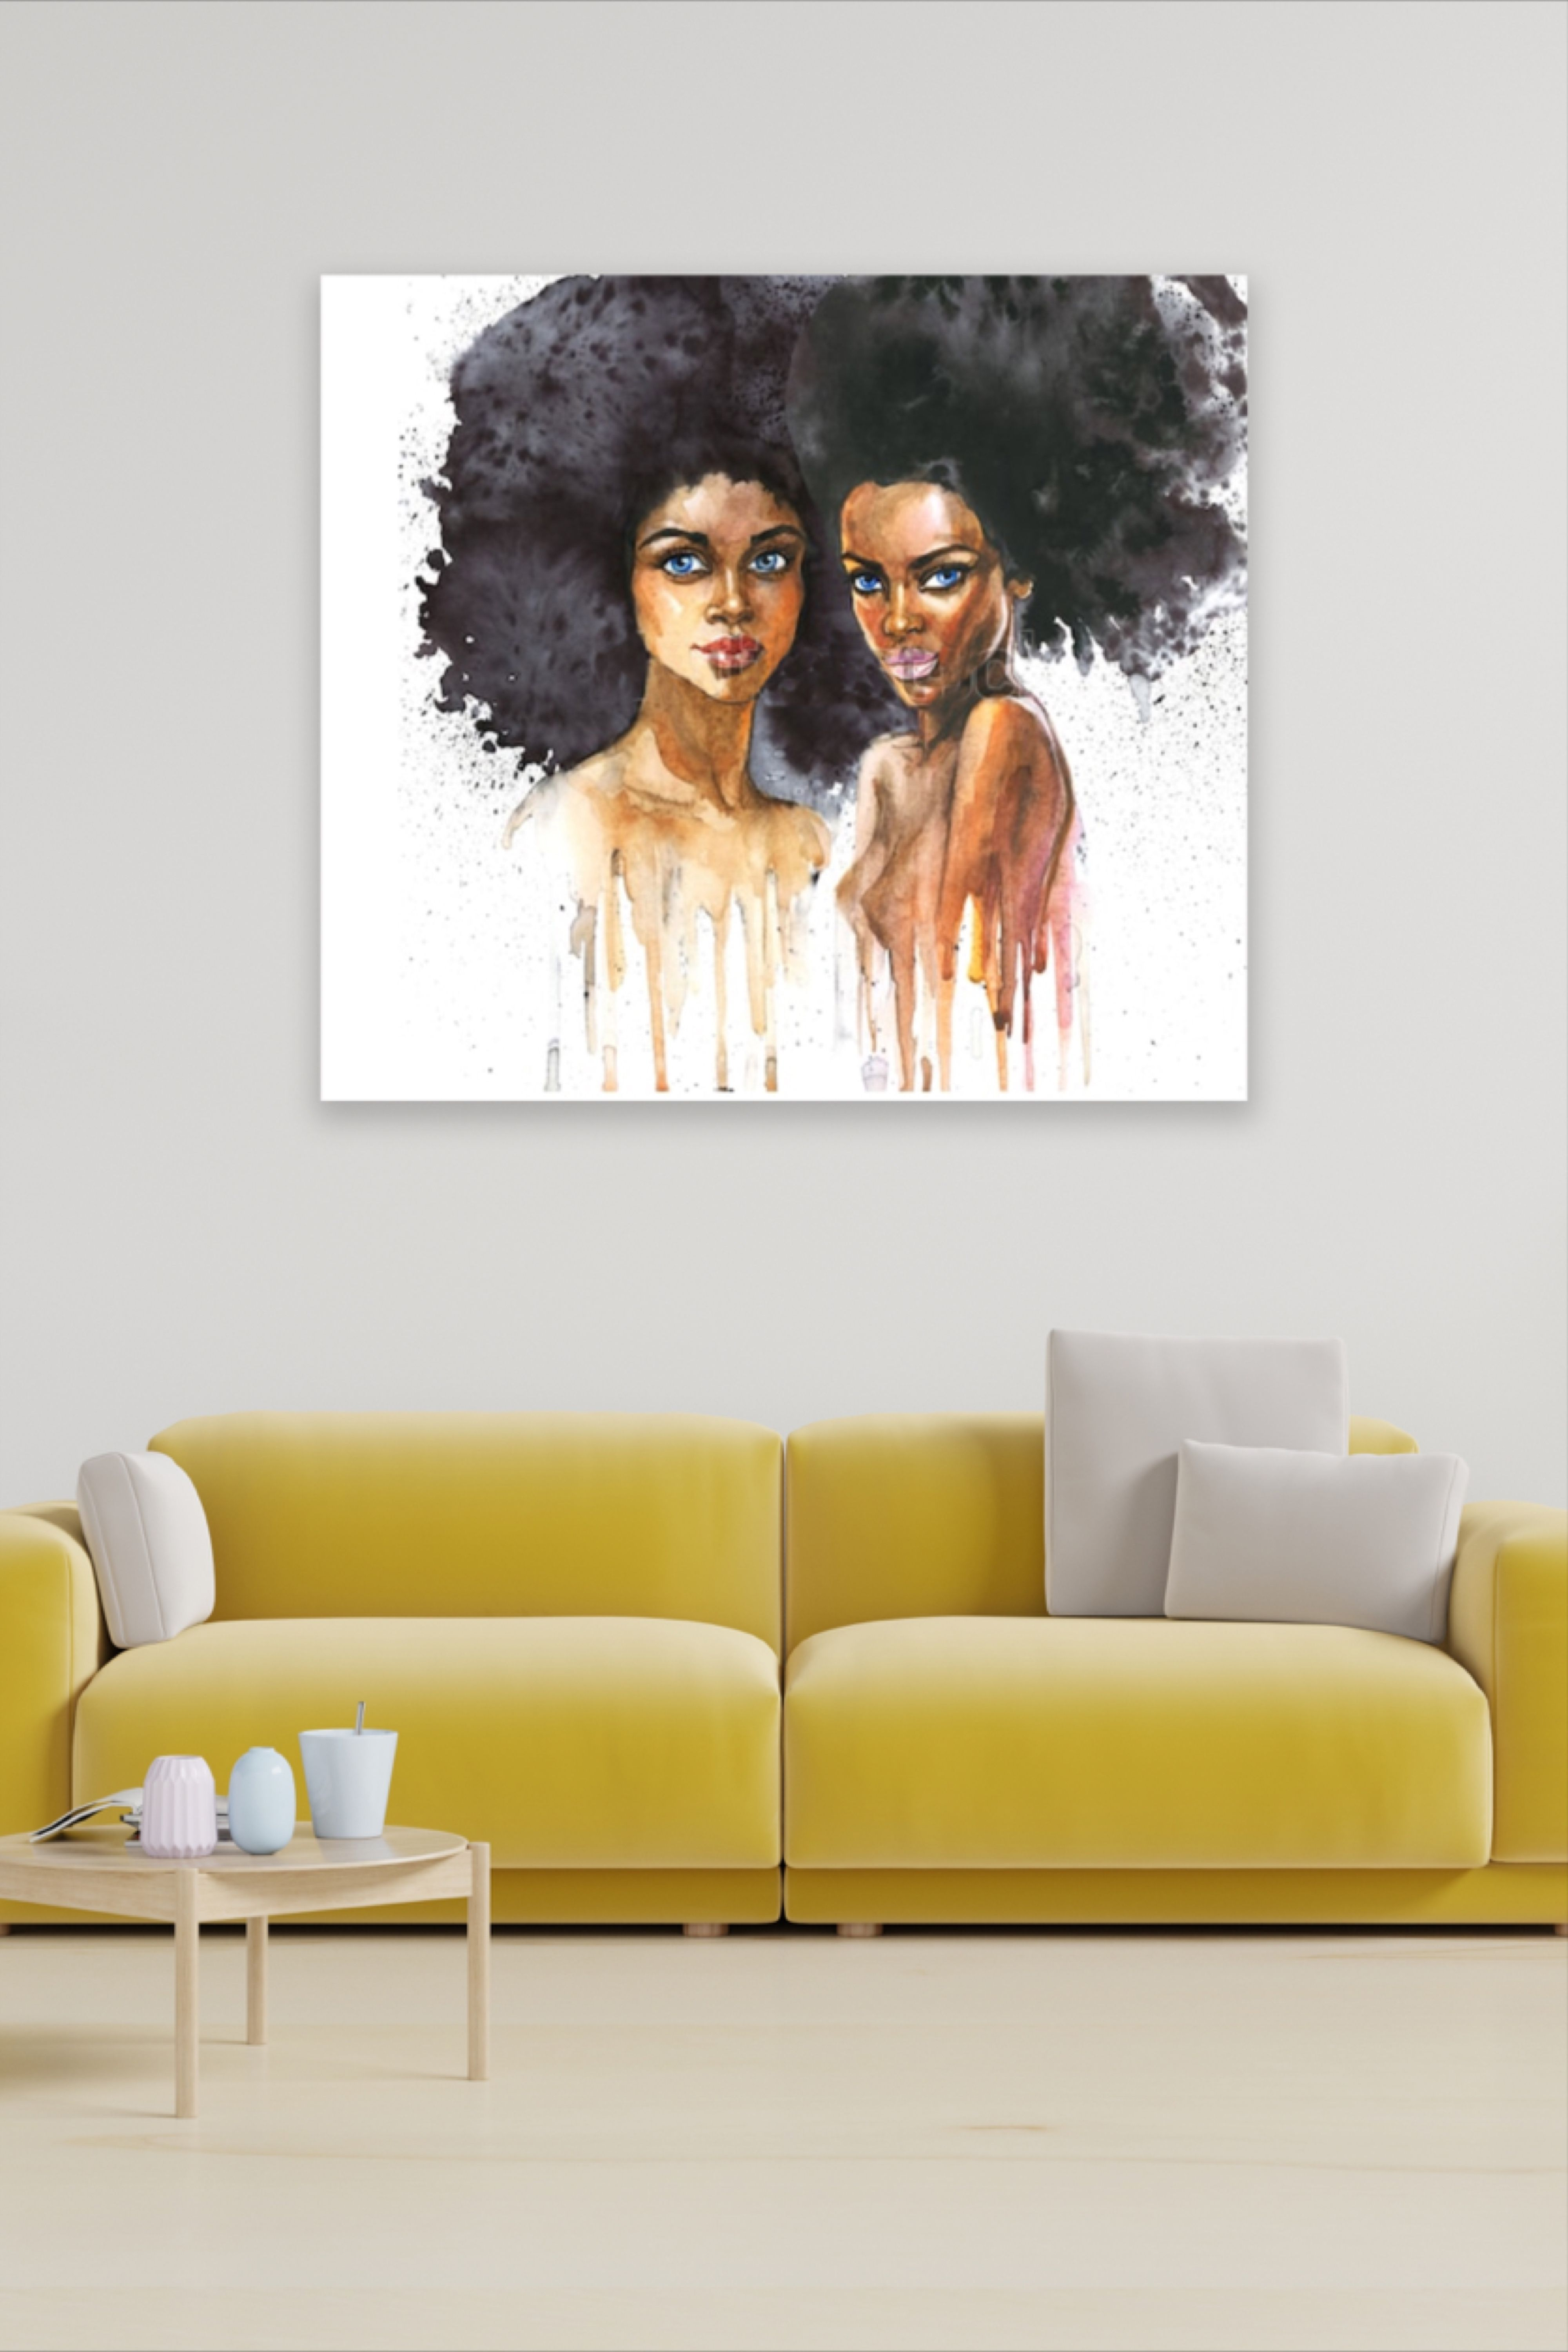 African American Art Hair Salon Decor Canvas Wall Art Glamour Decor Bedroom Decor Art Prints Fashion Painting Inspiring Art Prints Hand Drawn Portraits